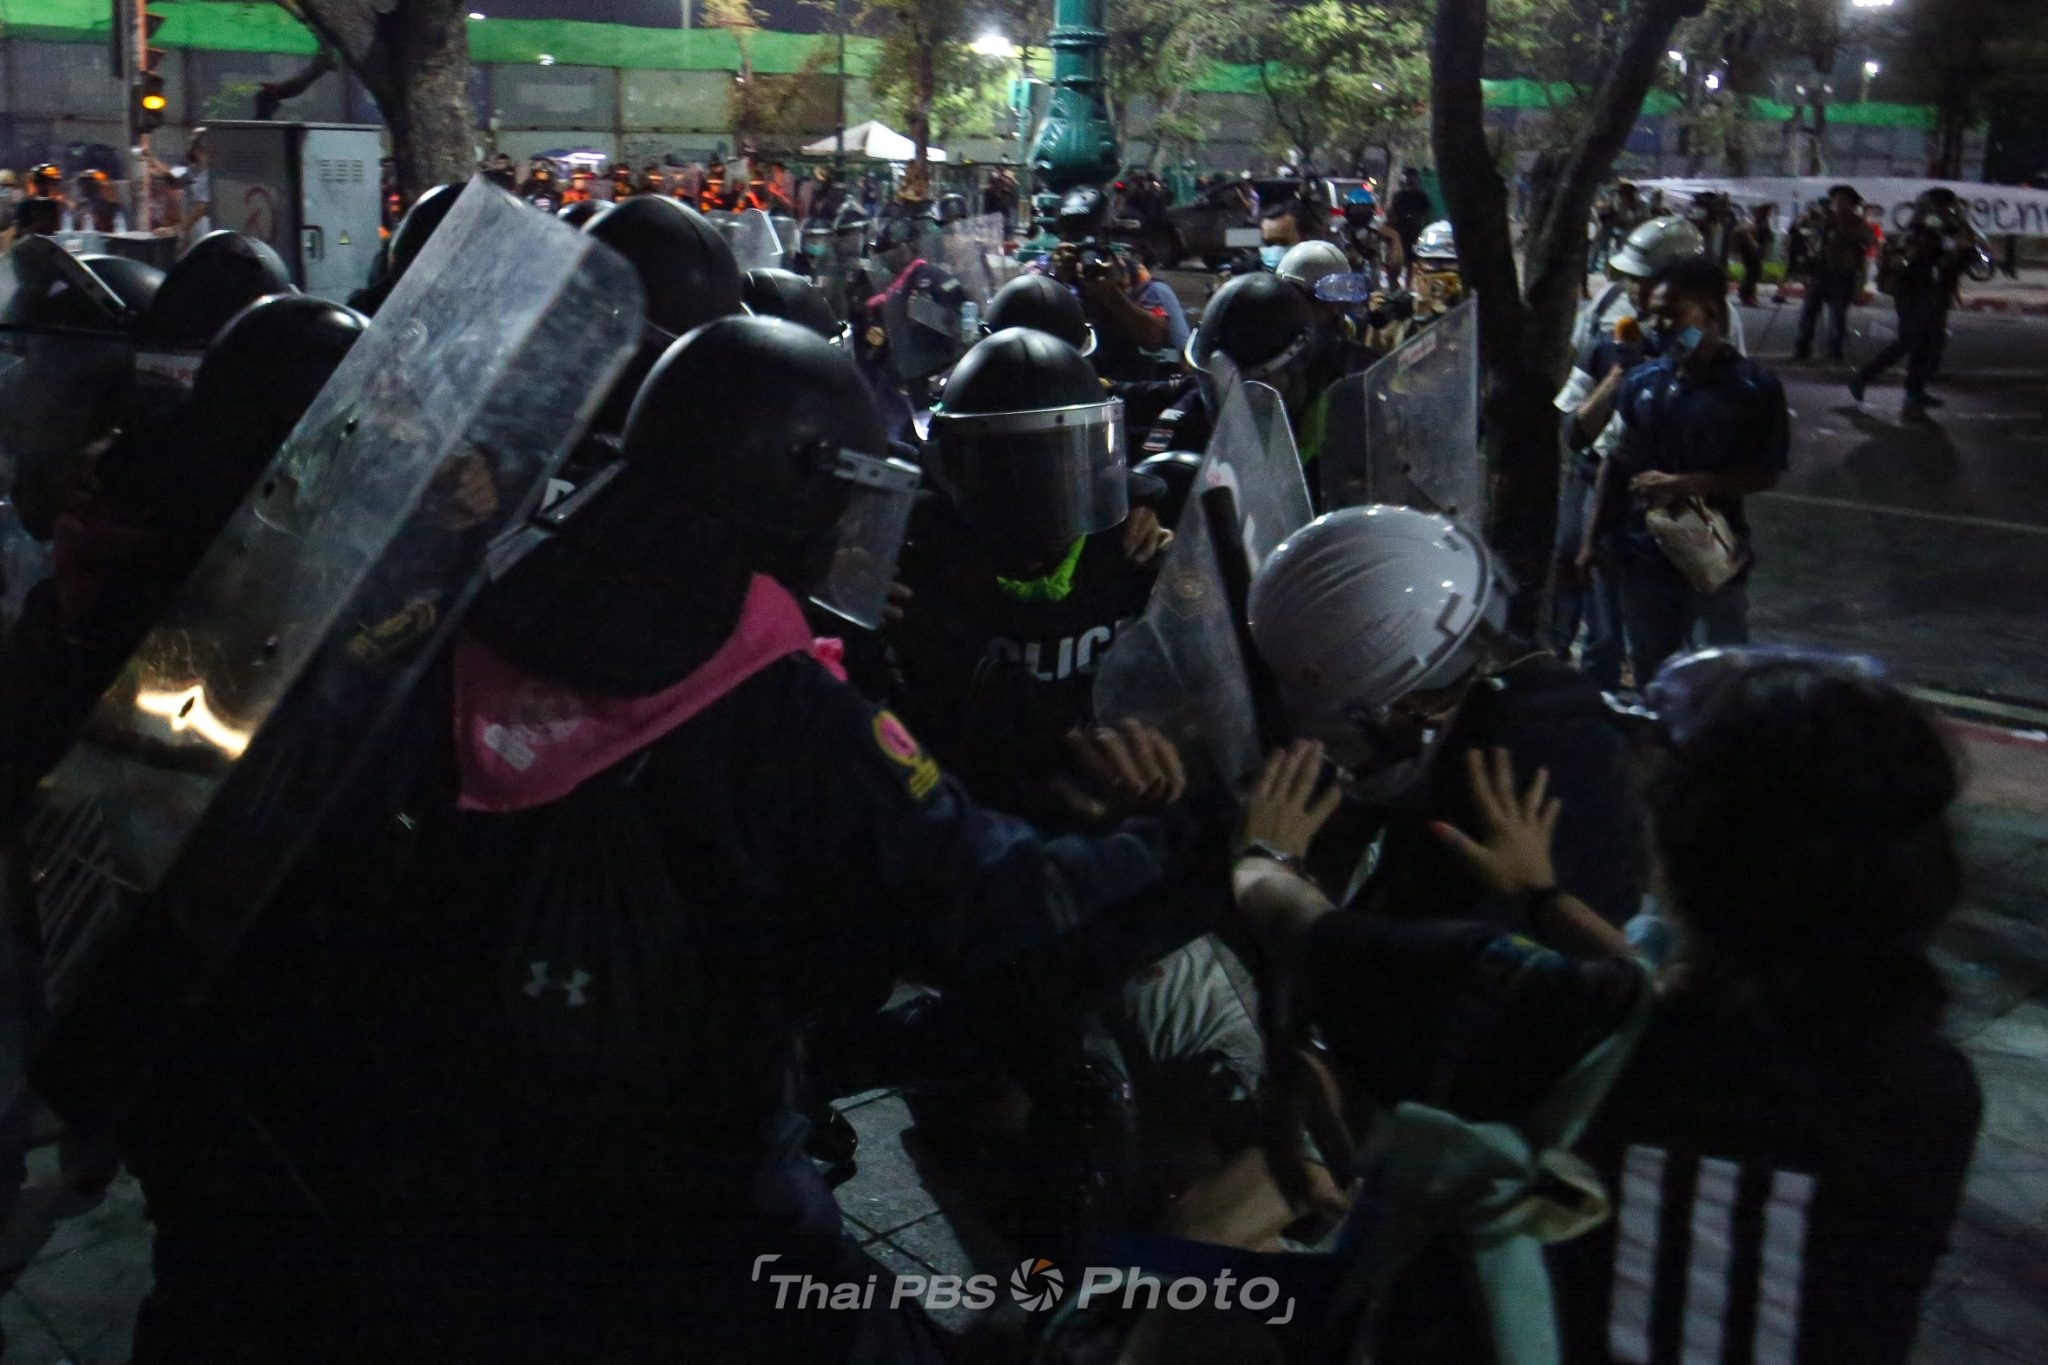 at least 32 injured in clashes 20 taken into police custody - At least 32 injured in clashes, 20 taken into police custody